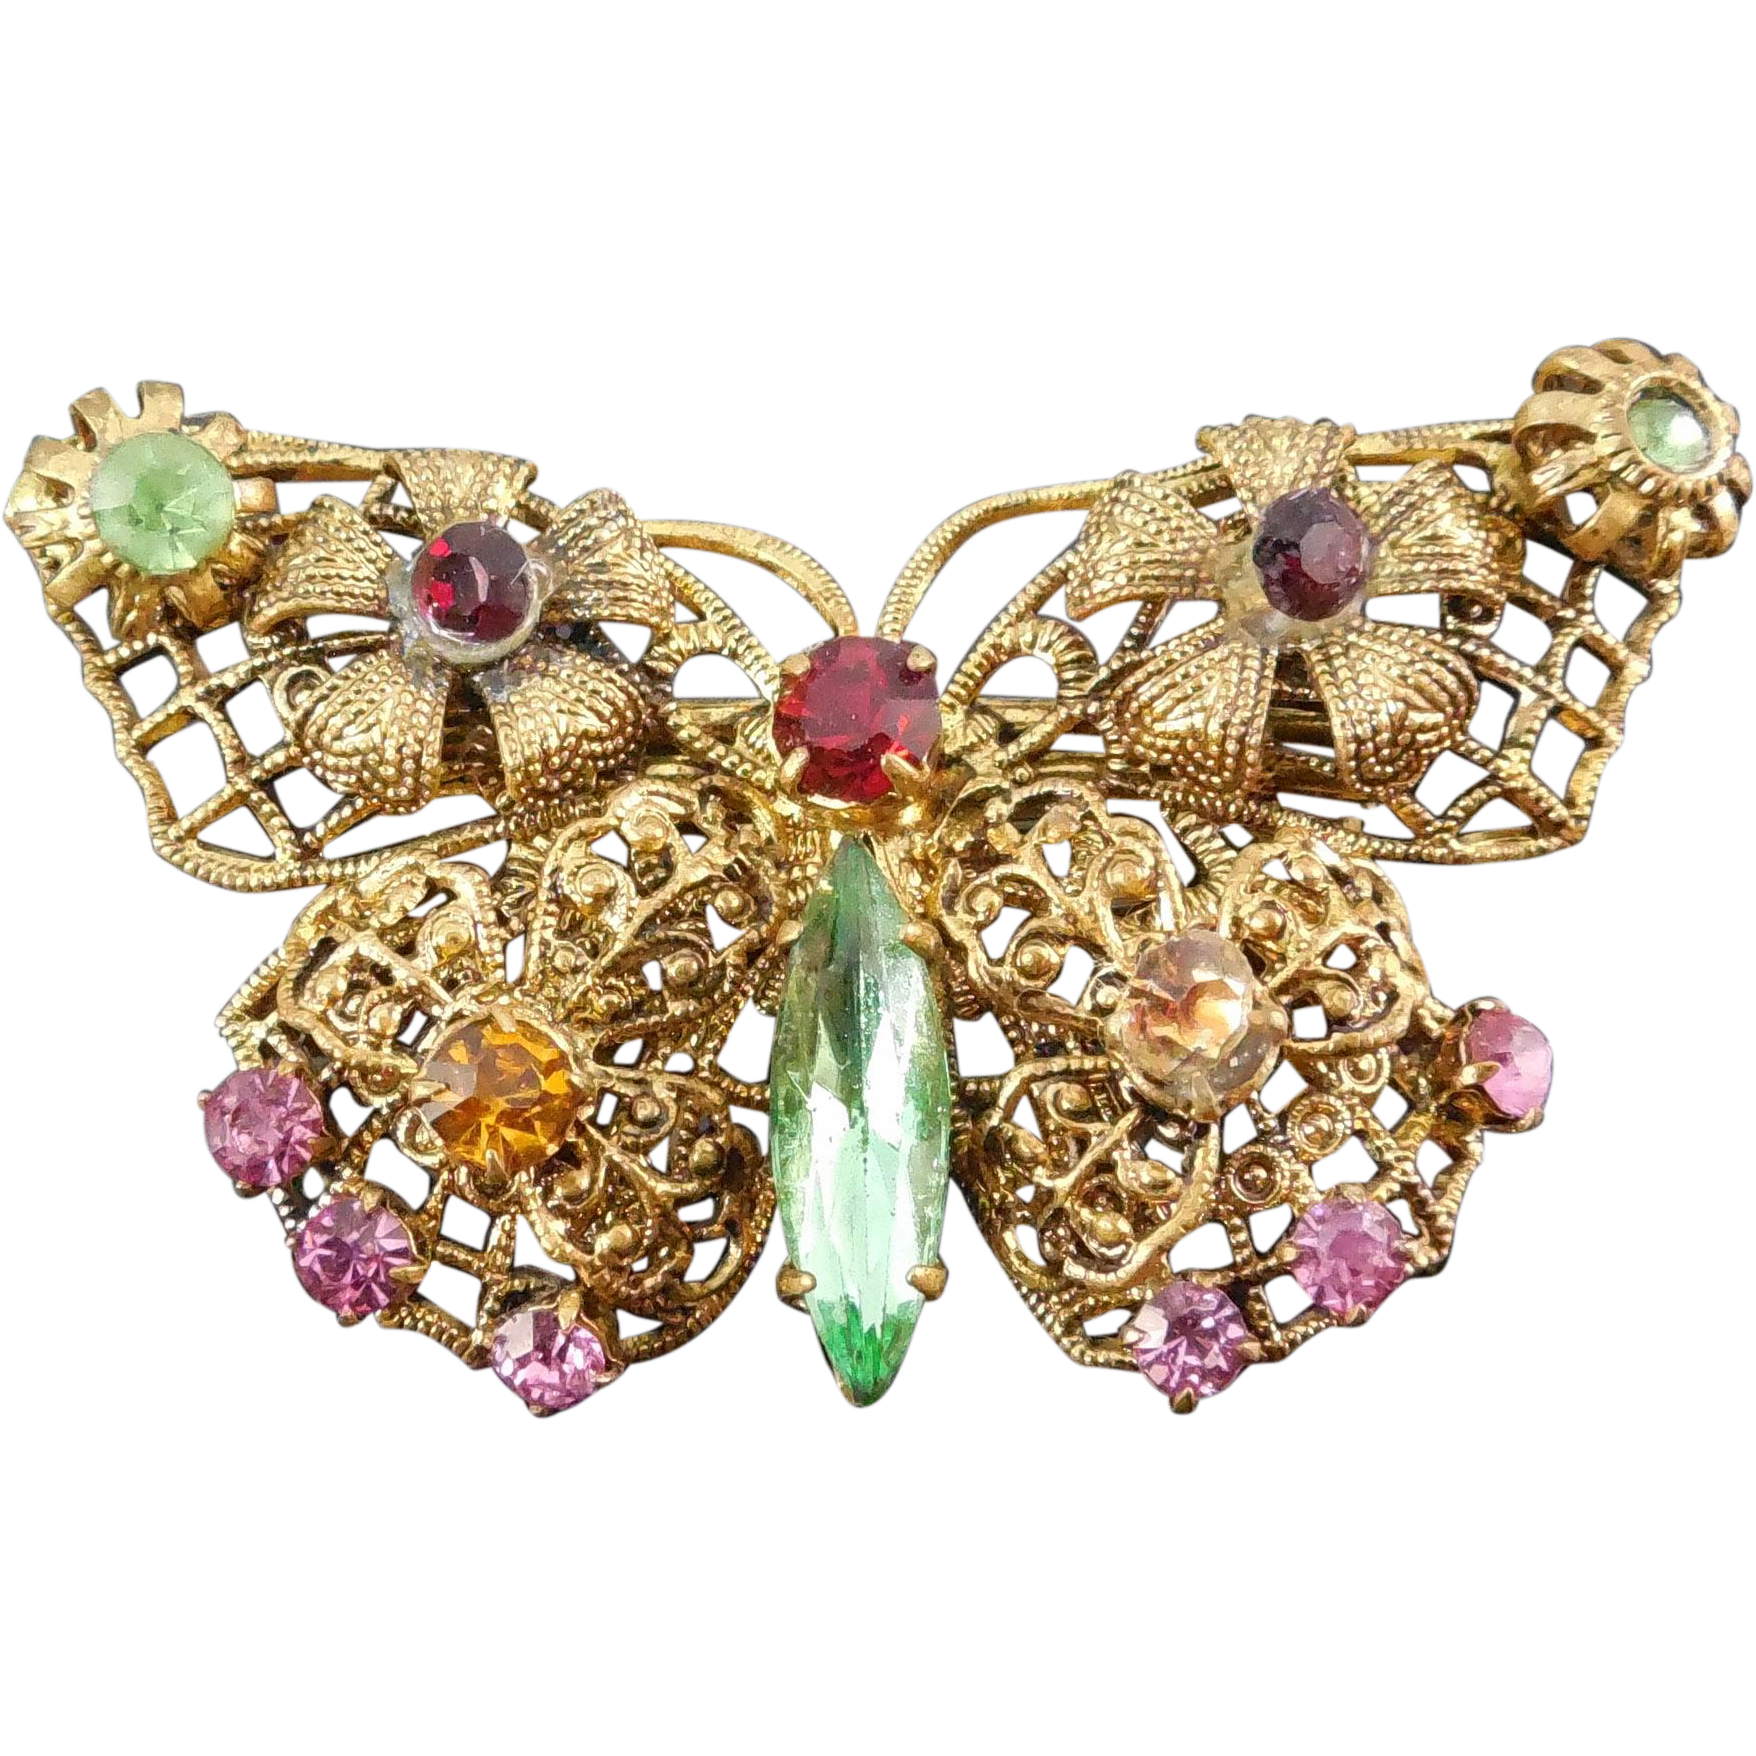 Gorgeous Vintage Butterfly Brooch with Multi Colored Rhinestones